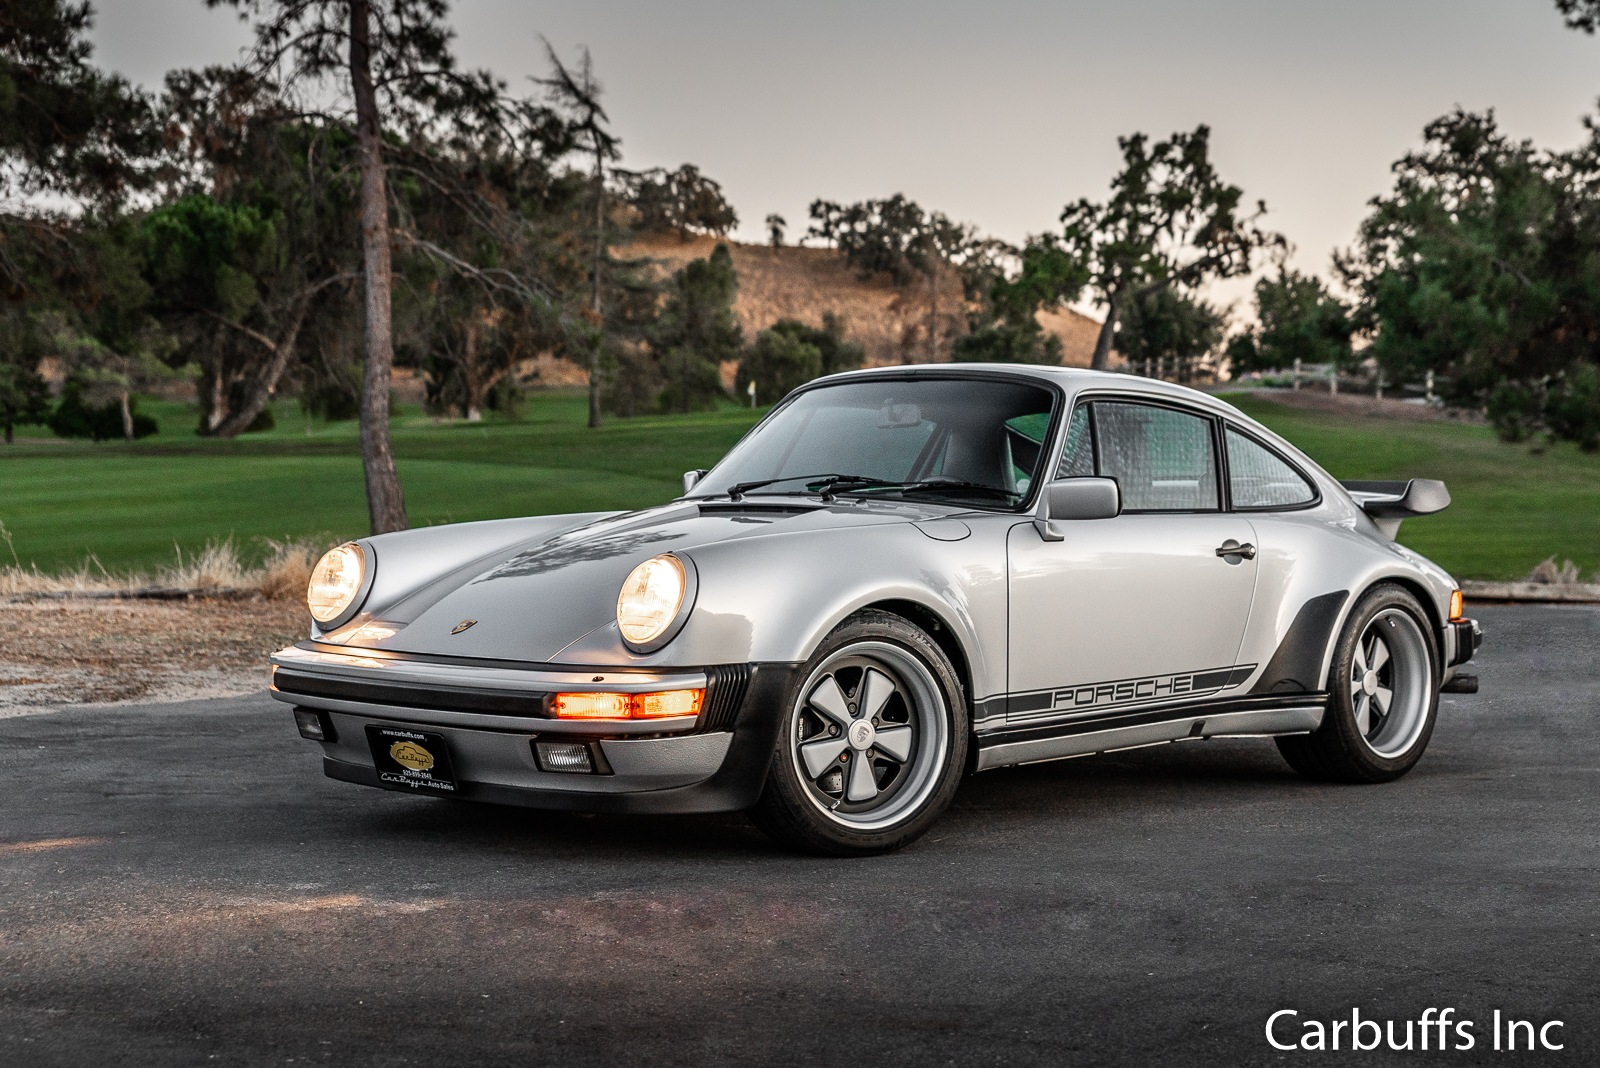 1987 Porsche 911 Turbo for sale at www.carbuffs.com by rcollinsphotography